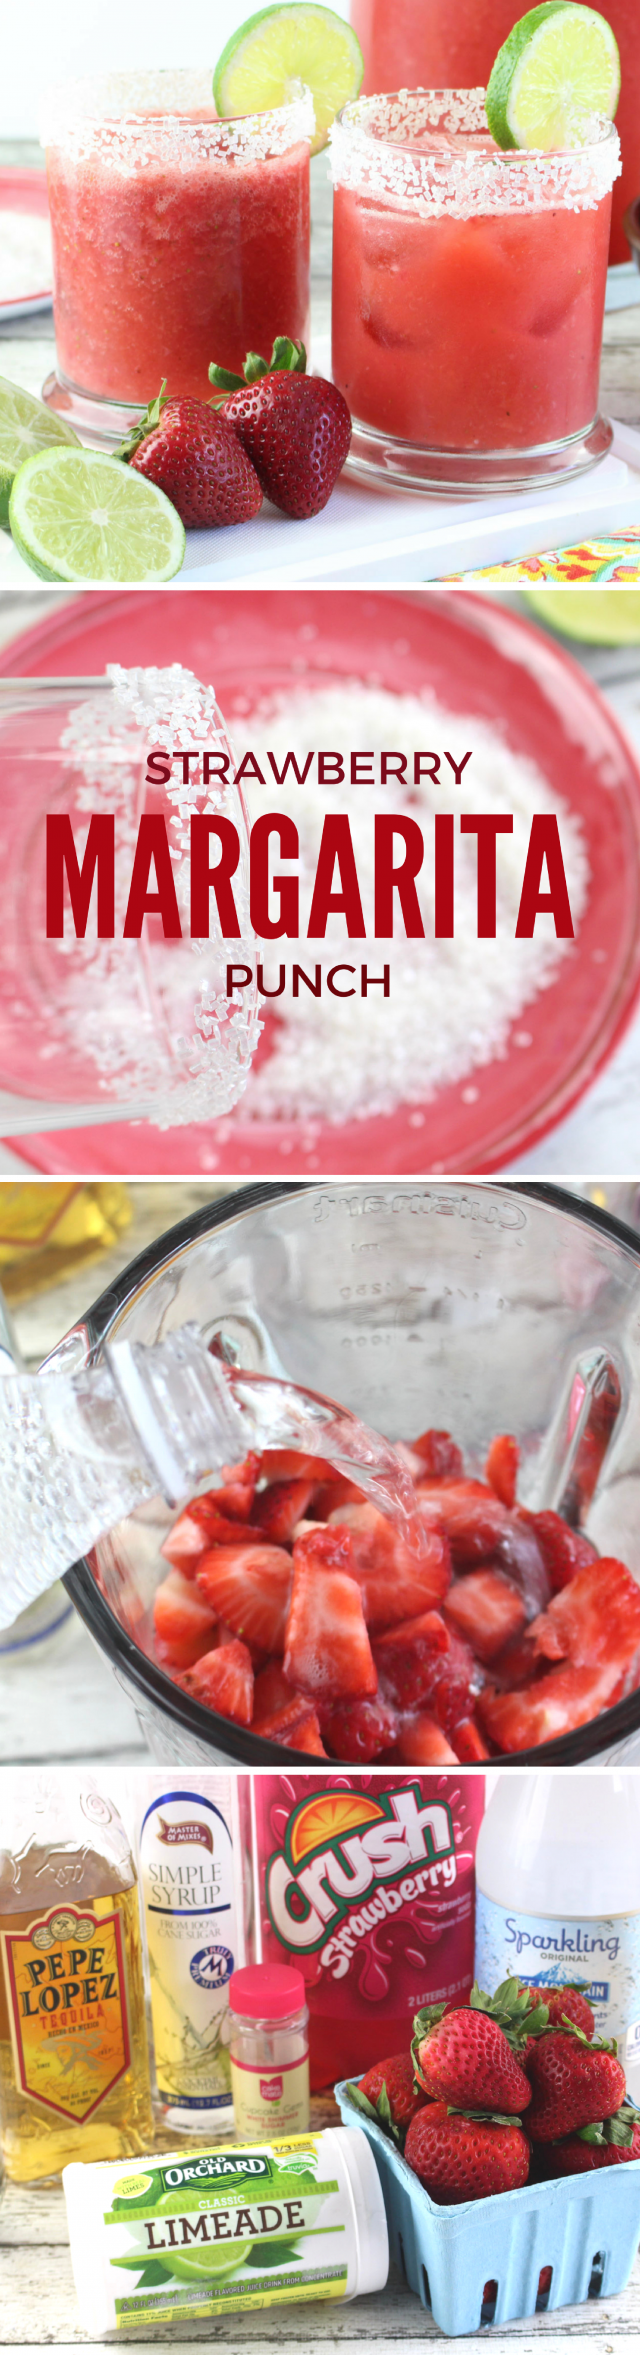 Strawberry Margarita Punch Drink Recipe  Oh, how I'm already loving the longer, sunny days of spring and early summer. It has me in a mood for yummy margaritas at the end of the day, which inspired this recipe today!  Strawberry Margarita Punch. So sweet and delicious!